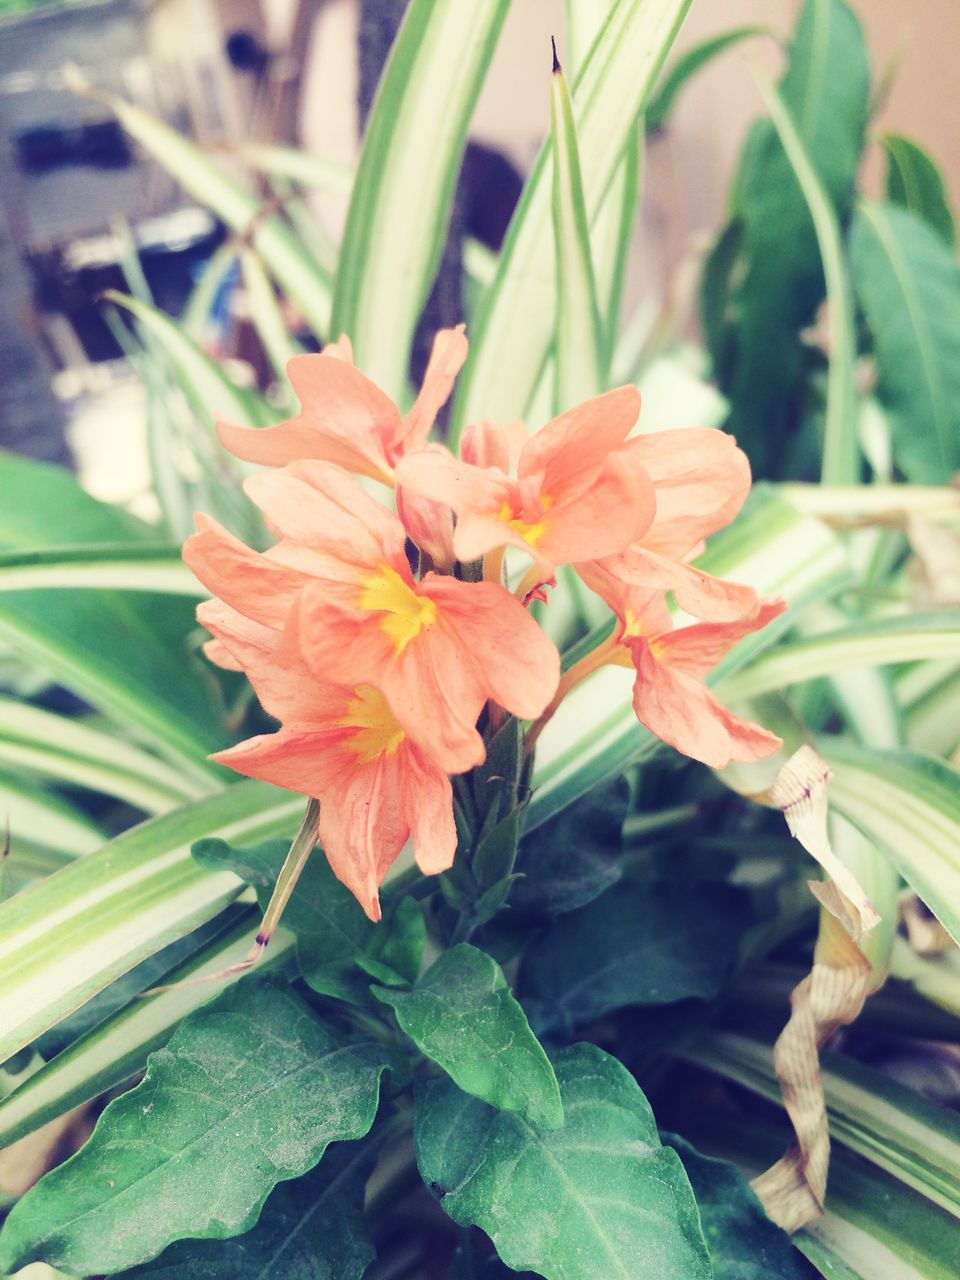 flower, growth, plant, leaf, nature, beauty in nature, green color, fragility, freshness, petal, flower head, no people, close-up, outdoors, day